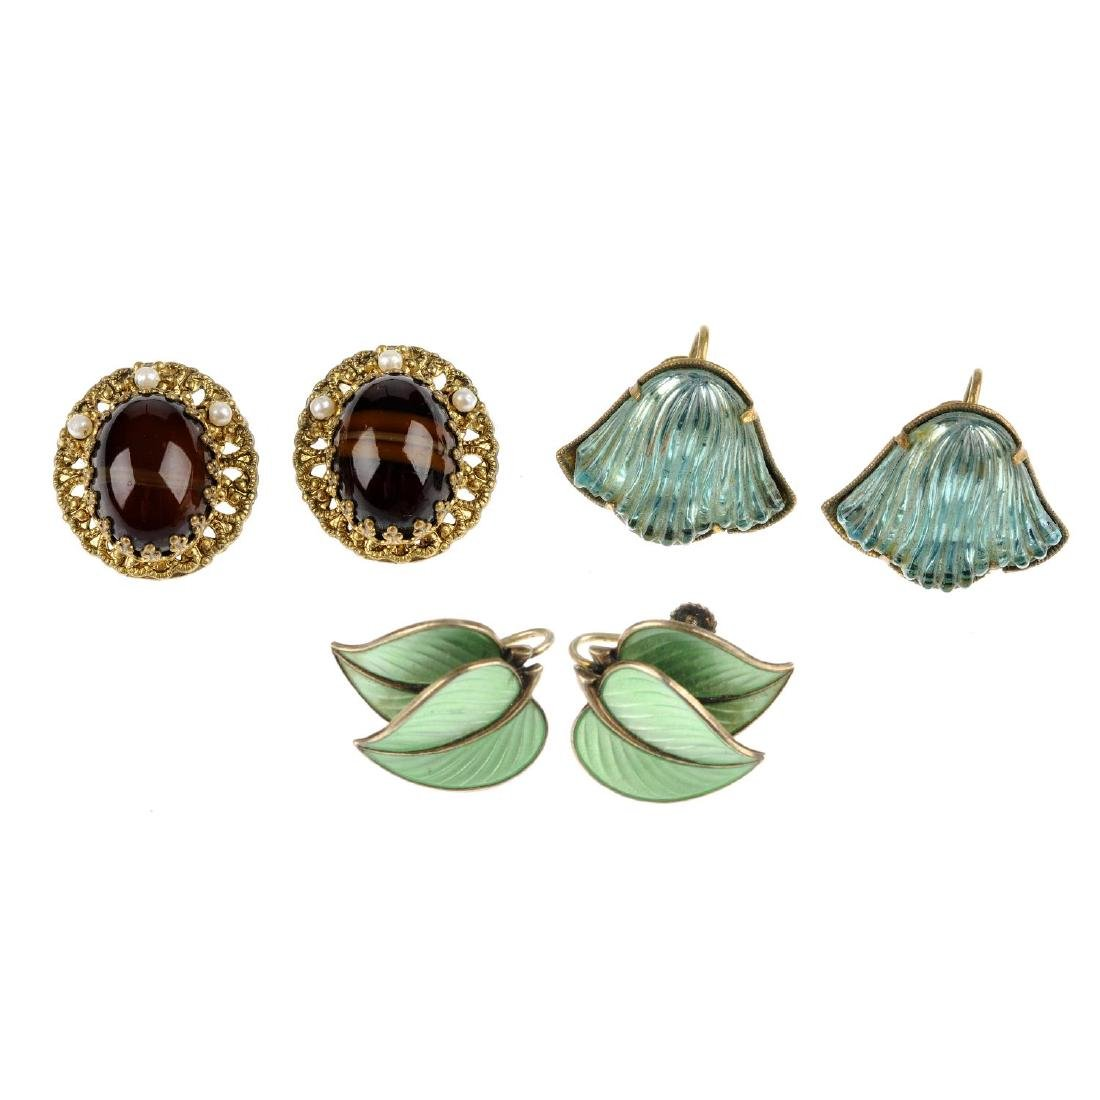 A selection of costume jewellery and a vanity set. To